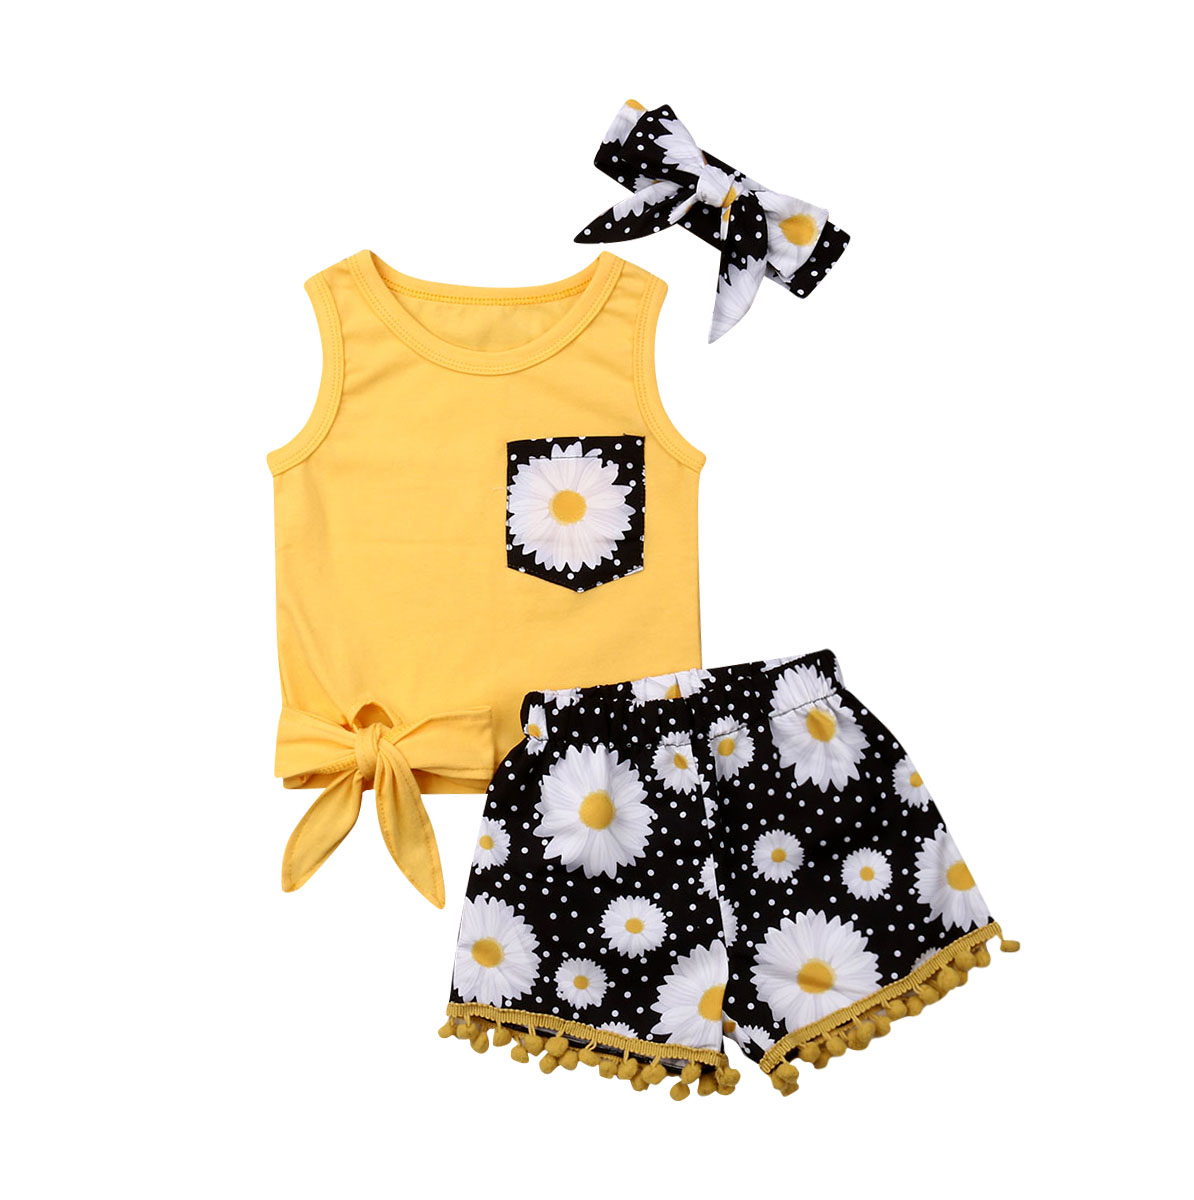 6M-5T Toddler Kids Girl Clothes Set Baby Girls Clothes Summer Sunflower Vest Tops T Shirt + Shorts Pants 3PCS Outfit Set